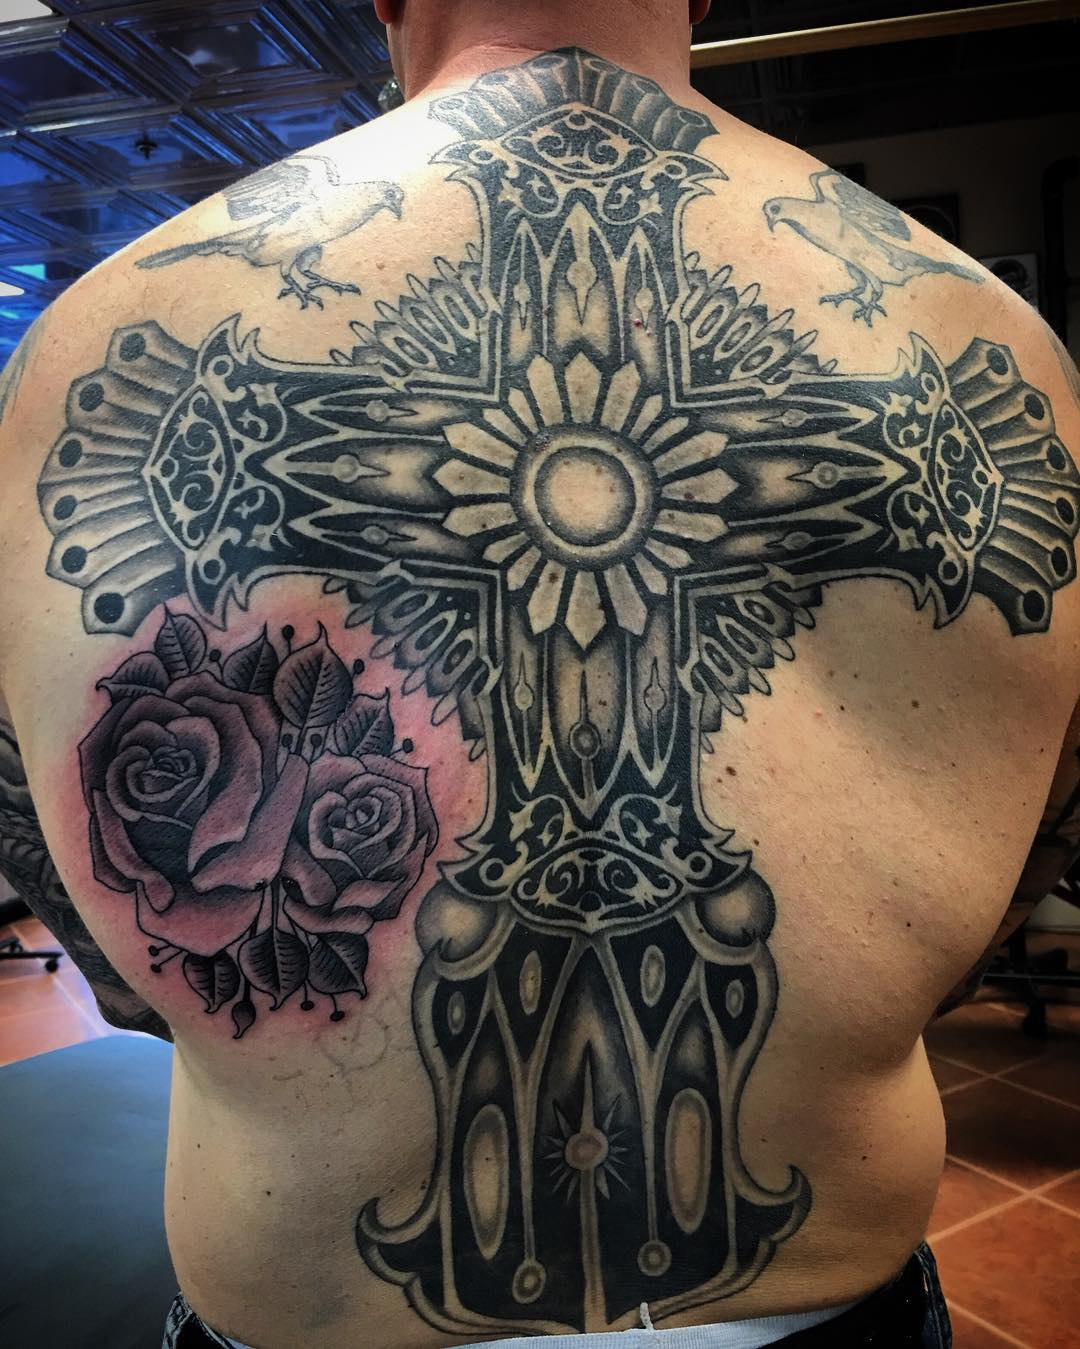 Superb Cross Tattoo on Back